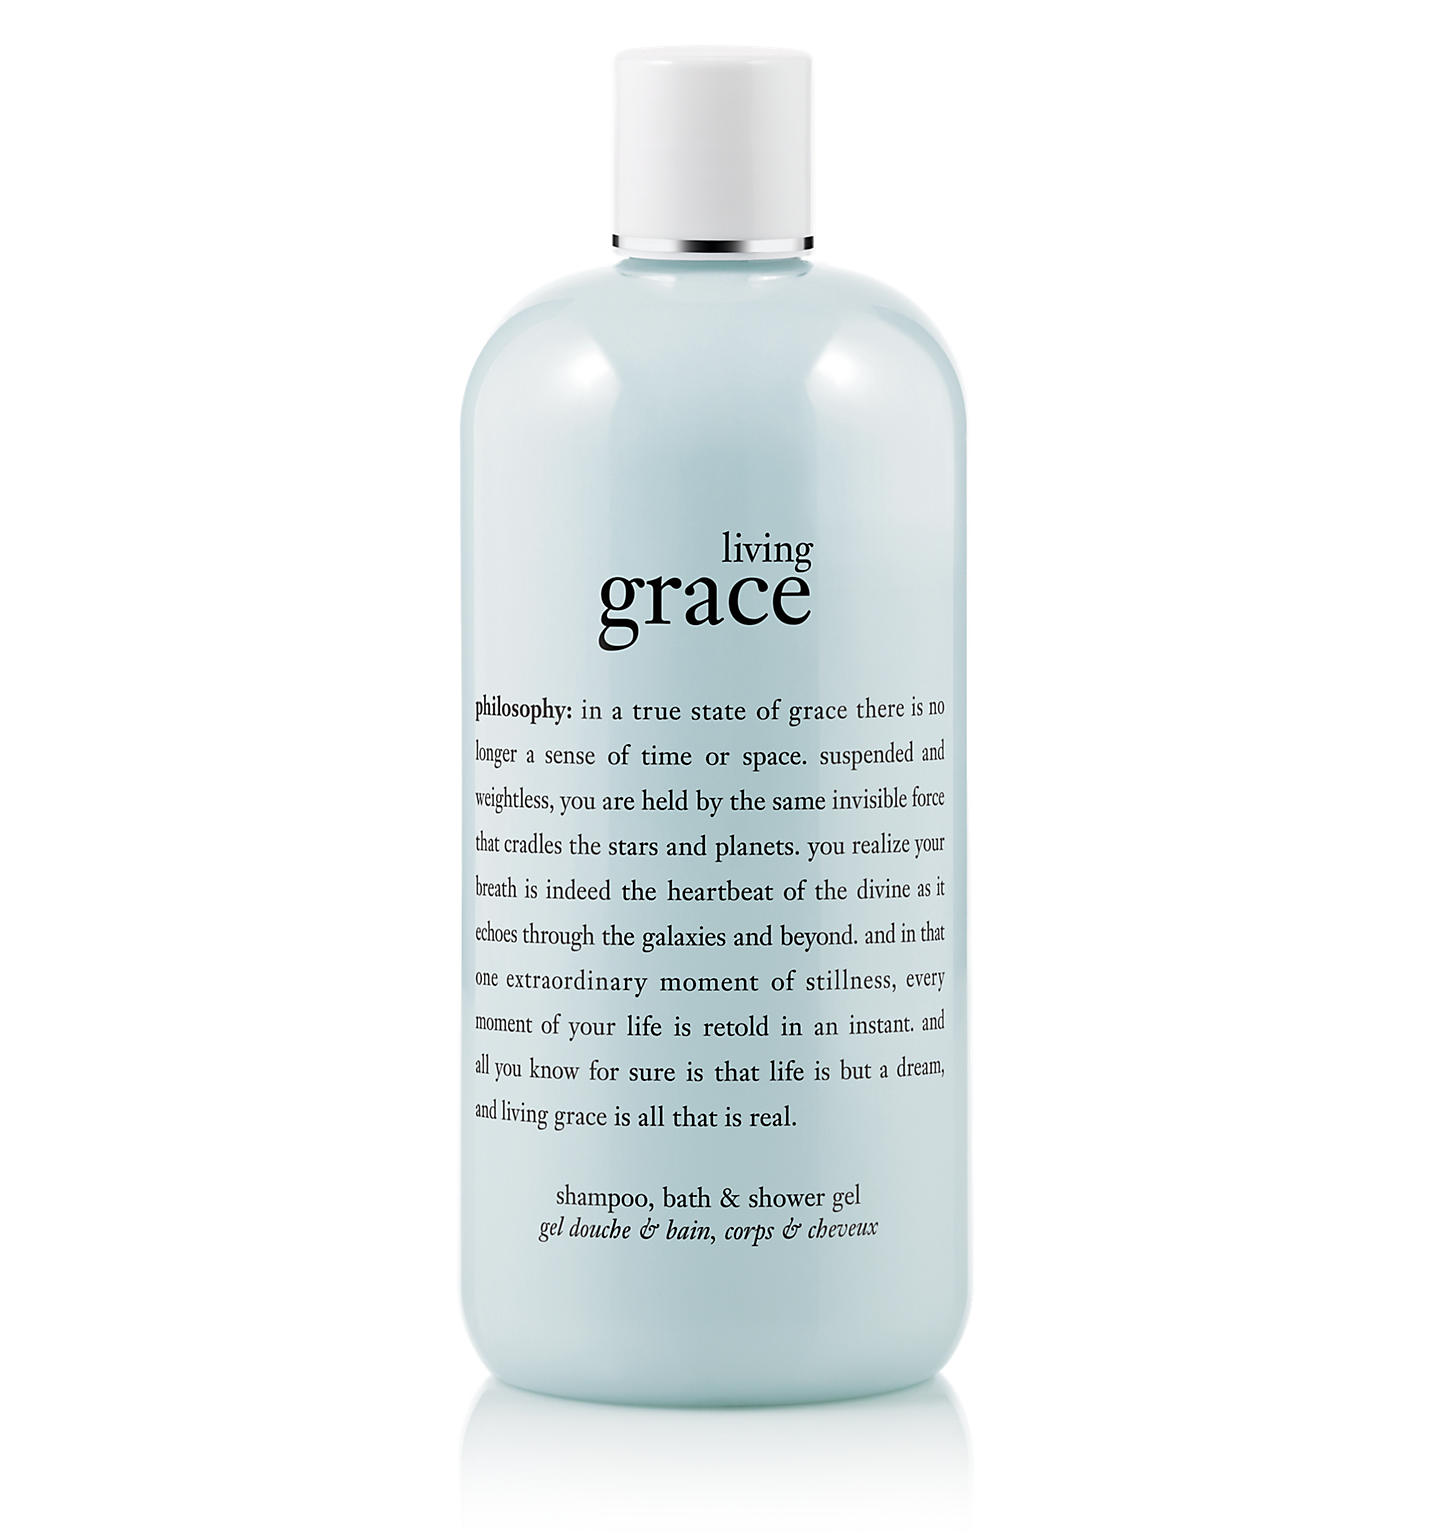 living grace shampoo, bath & shower gel